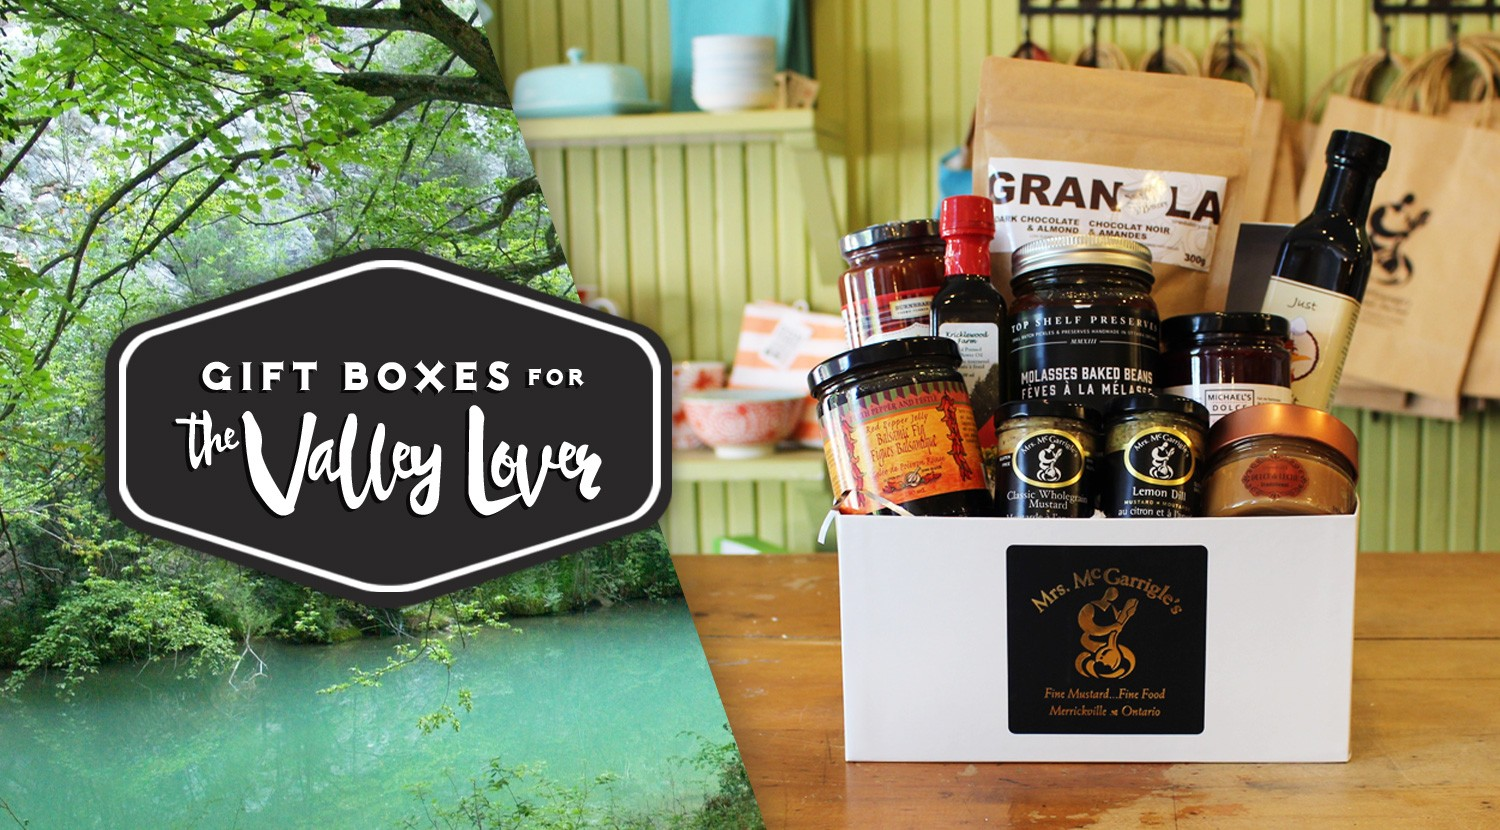 Mrs. McGarrigle's Gift Box for the Valley Lover